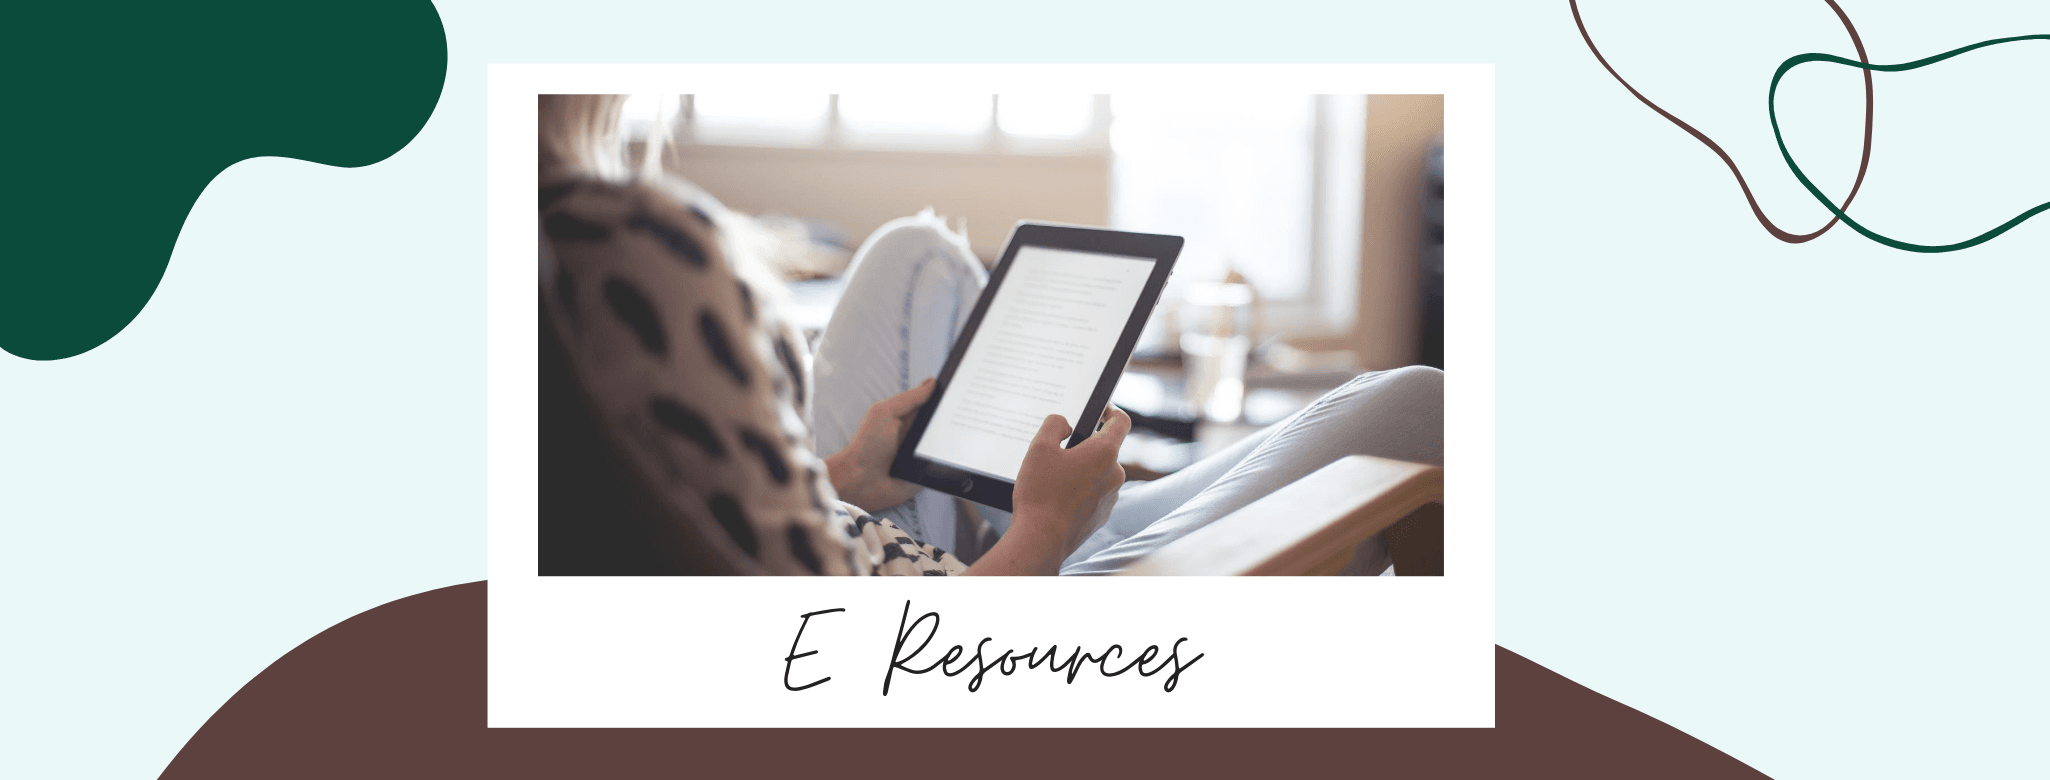 E Resources